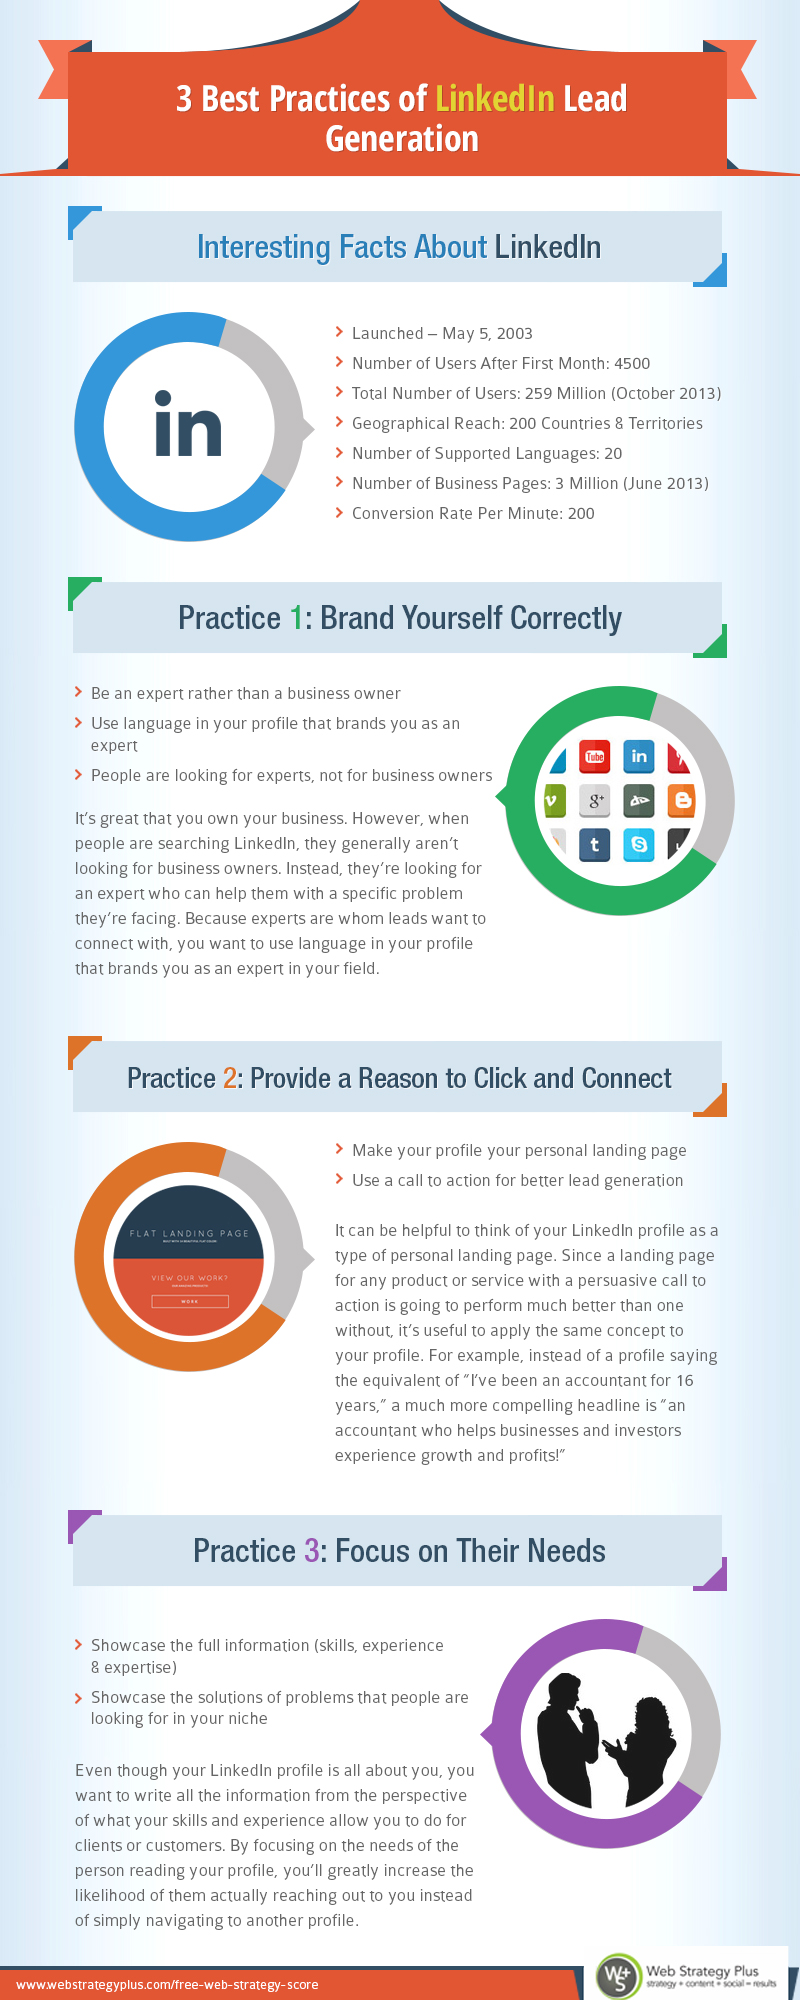 3 Best Practices of LinkedIn Lead Generation INFOGRAPHIC